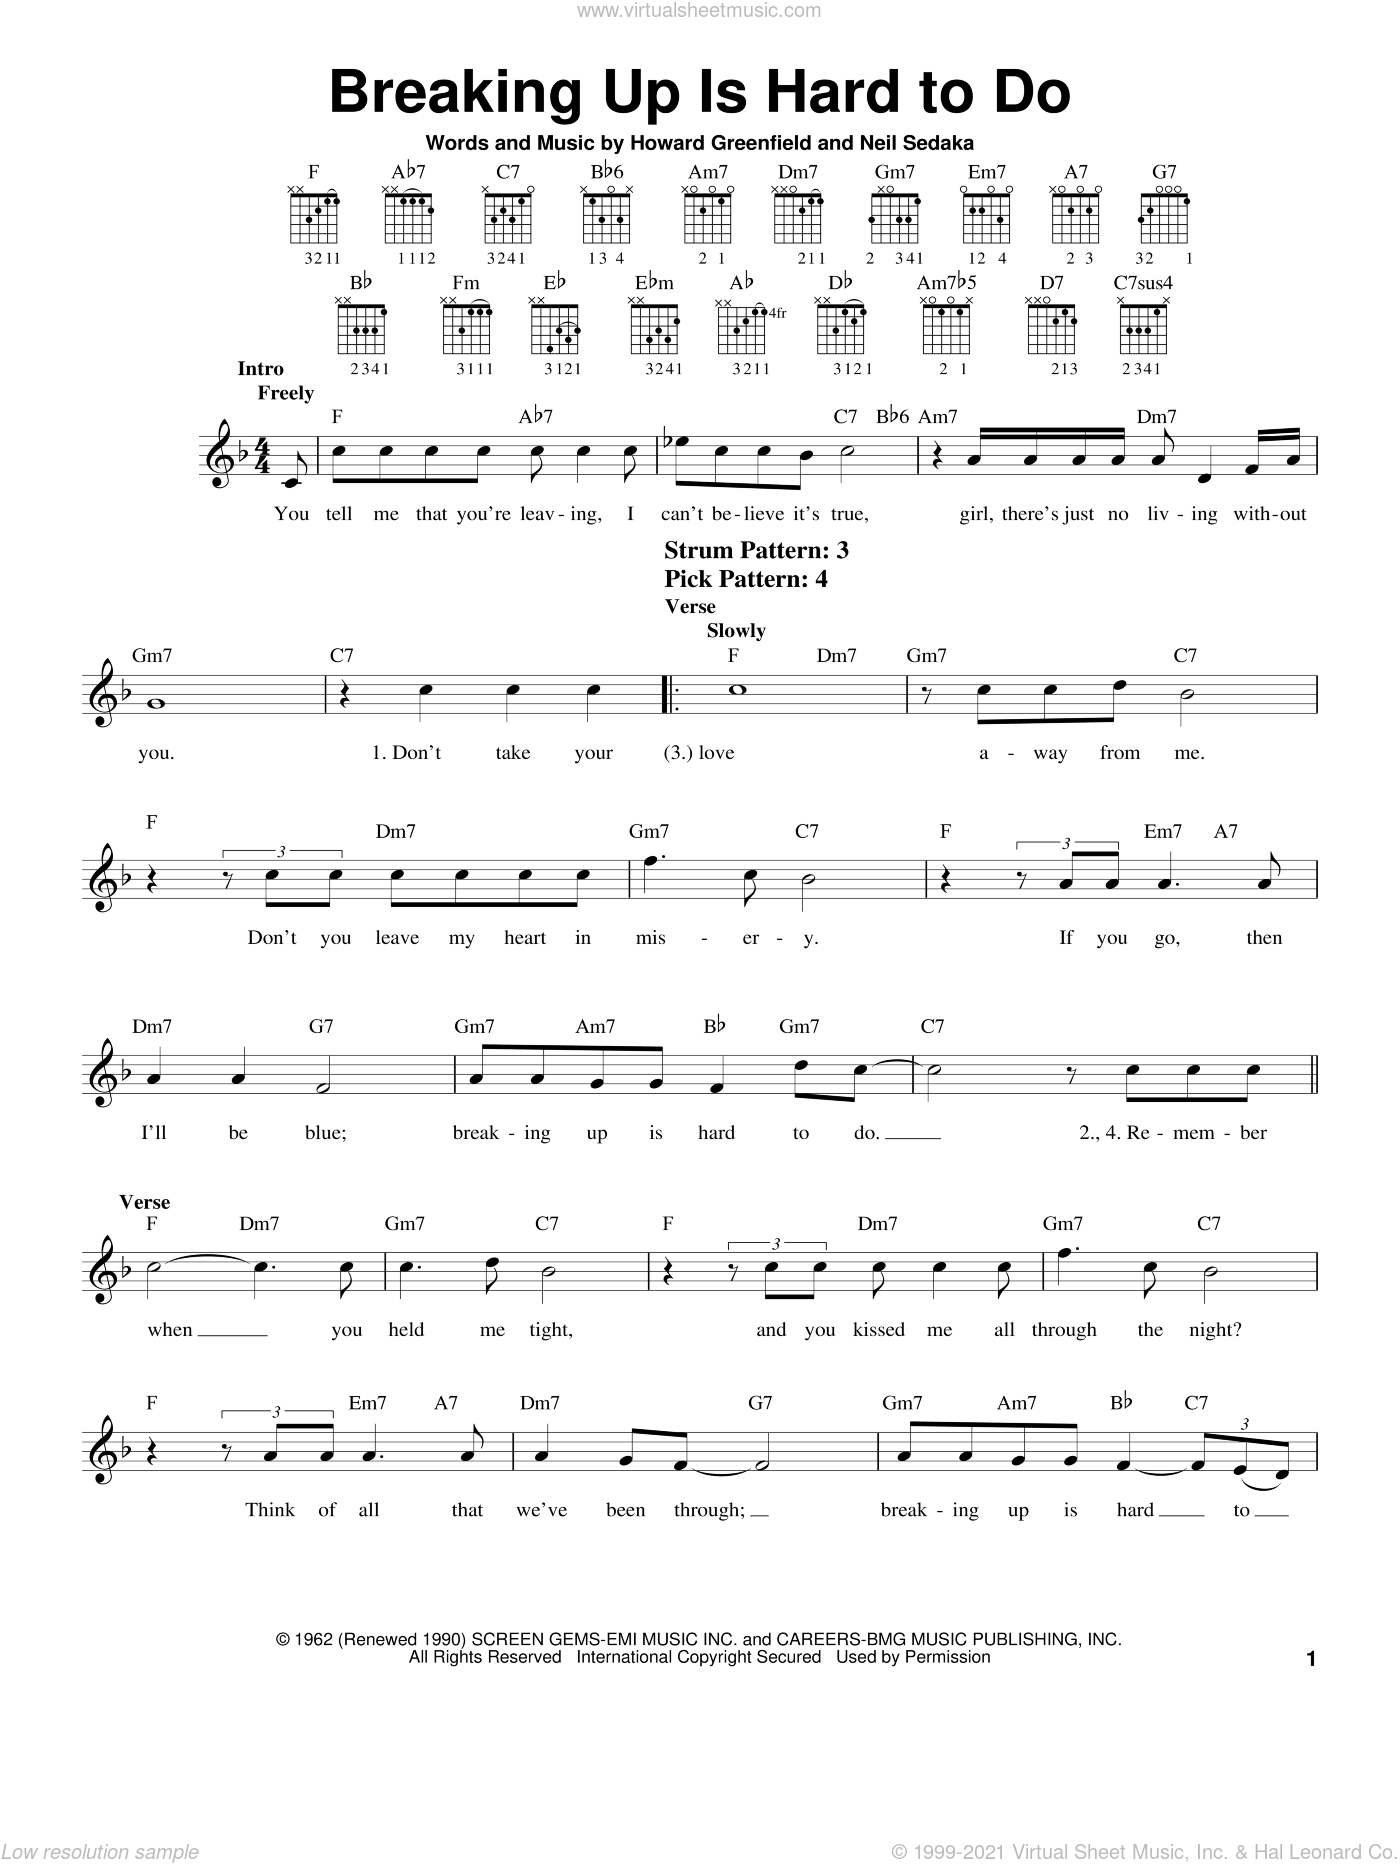 Breaking Up Is Hard To Do sheet music for guitar solo (chords) by Howard Greenfield